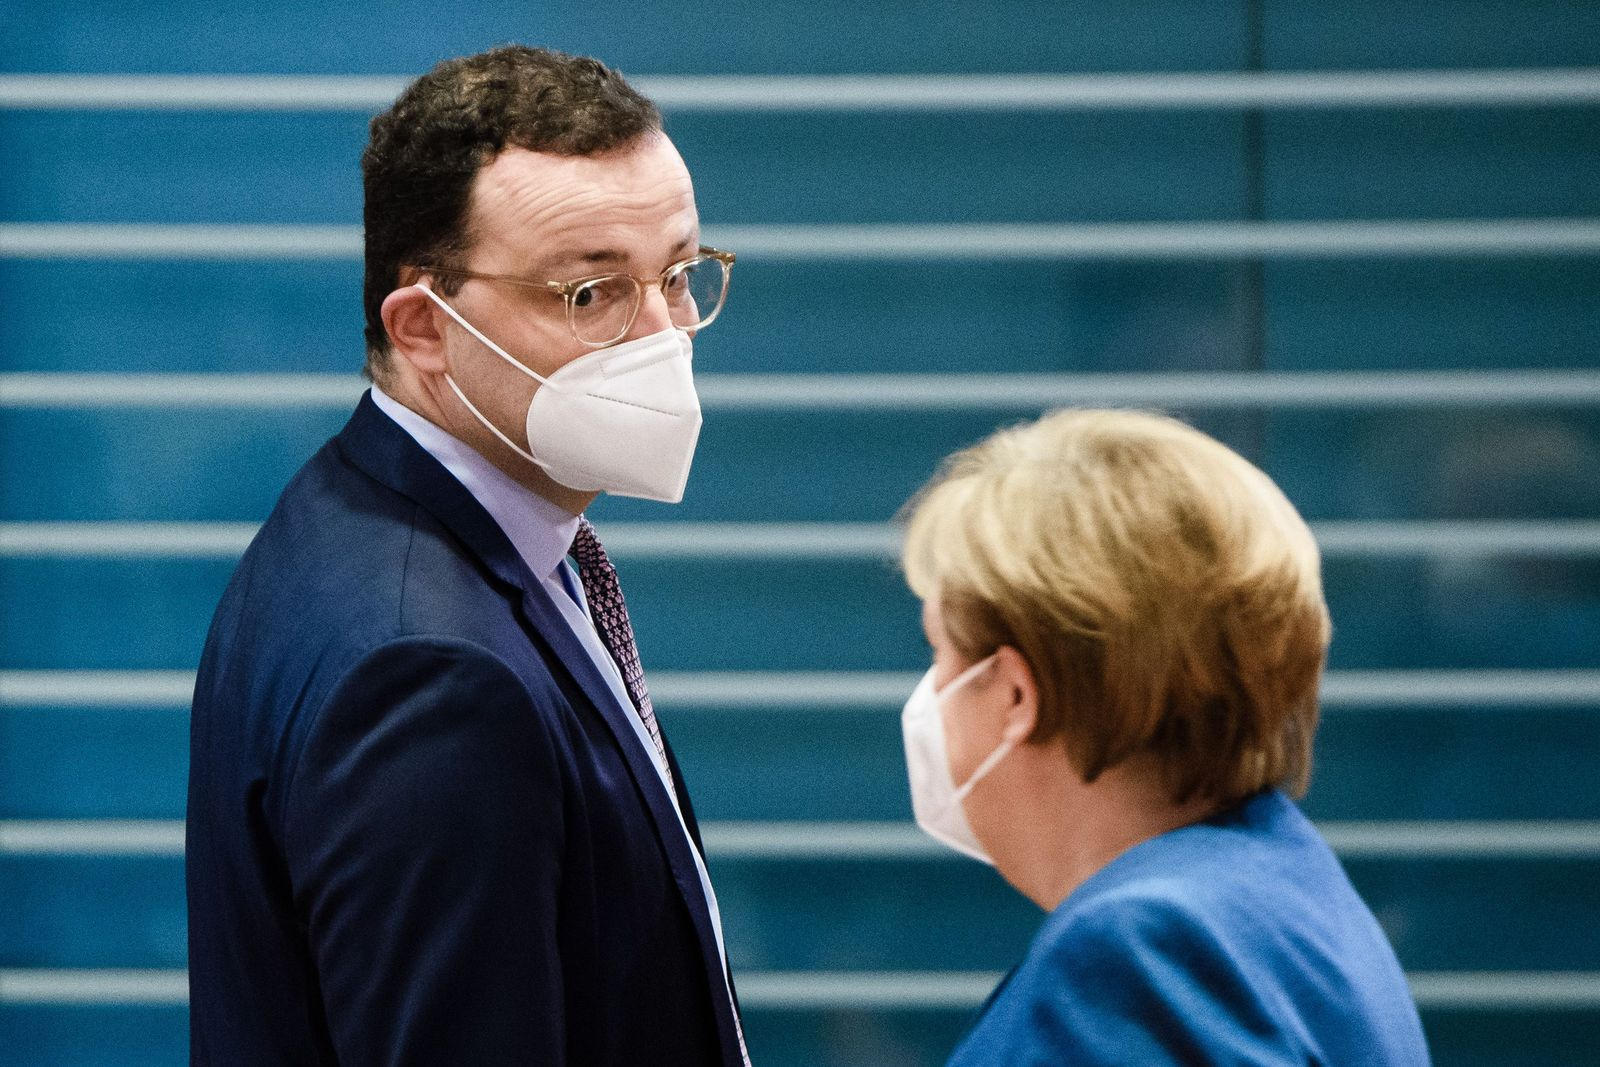 Cabinet meeting at the Chancellery in Berlin, Germany - 06 Jan 2021